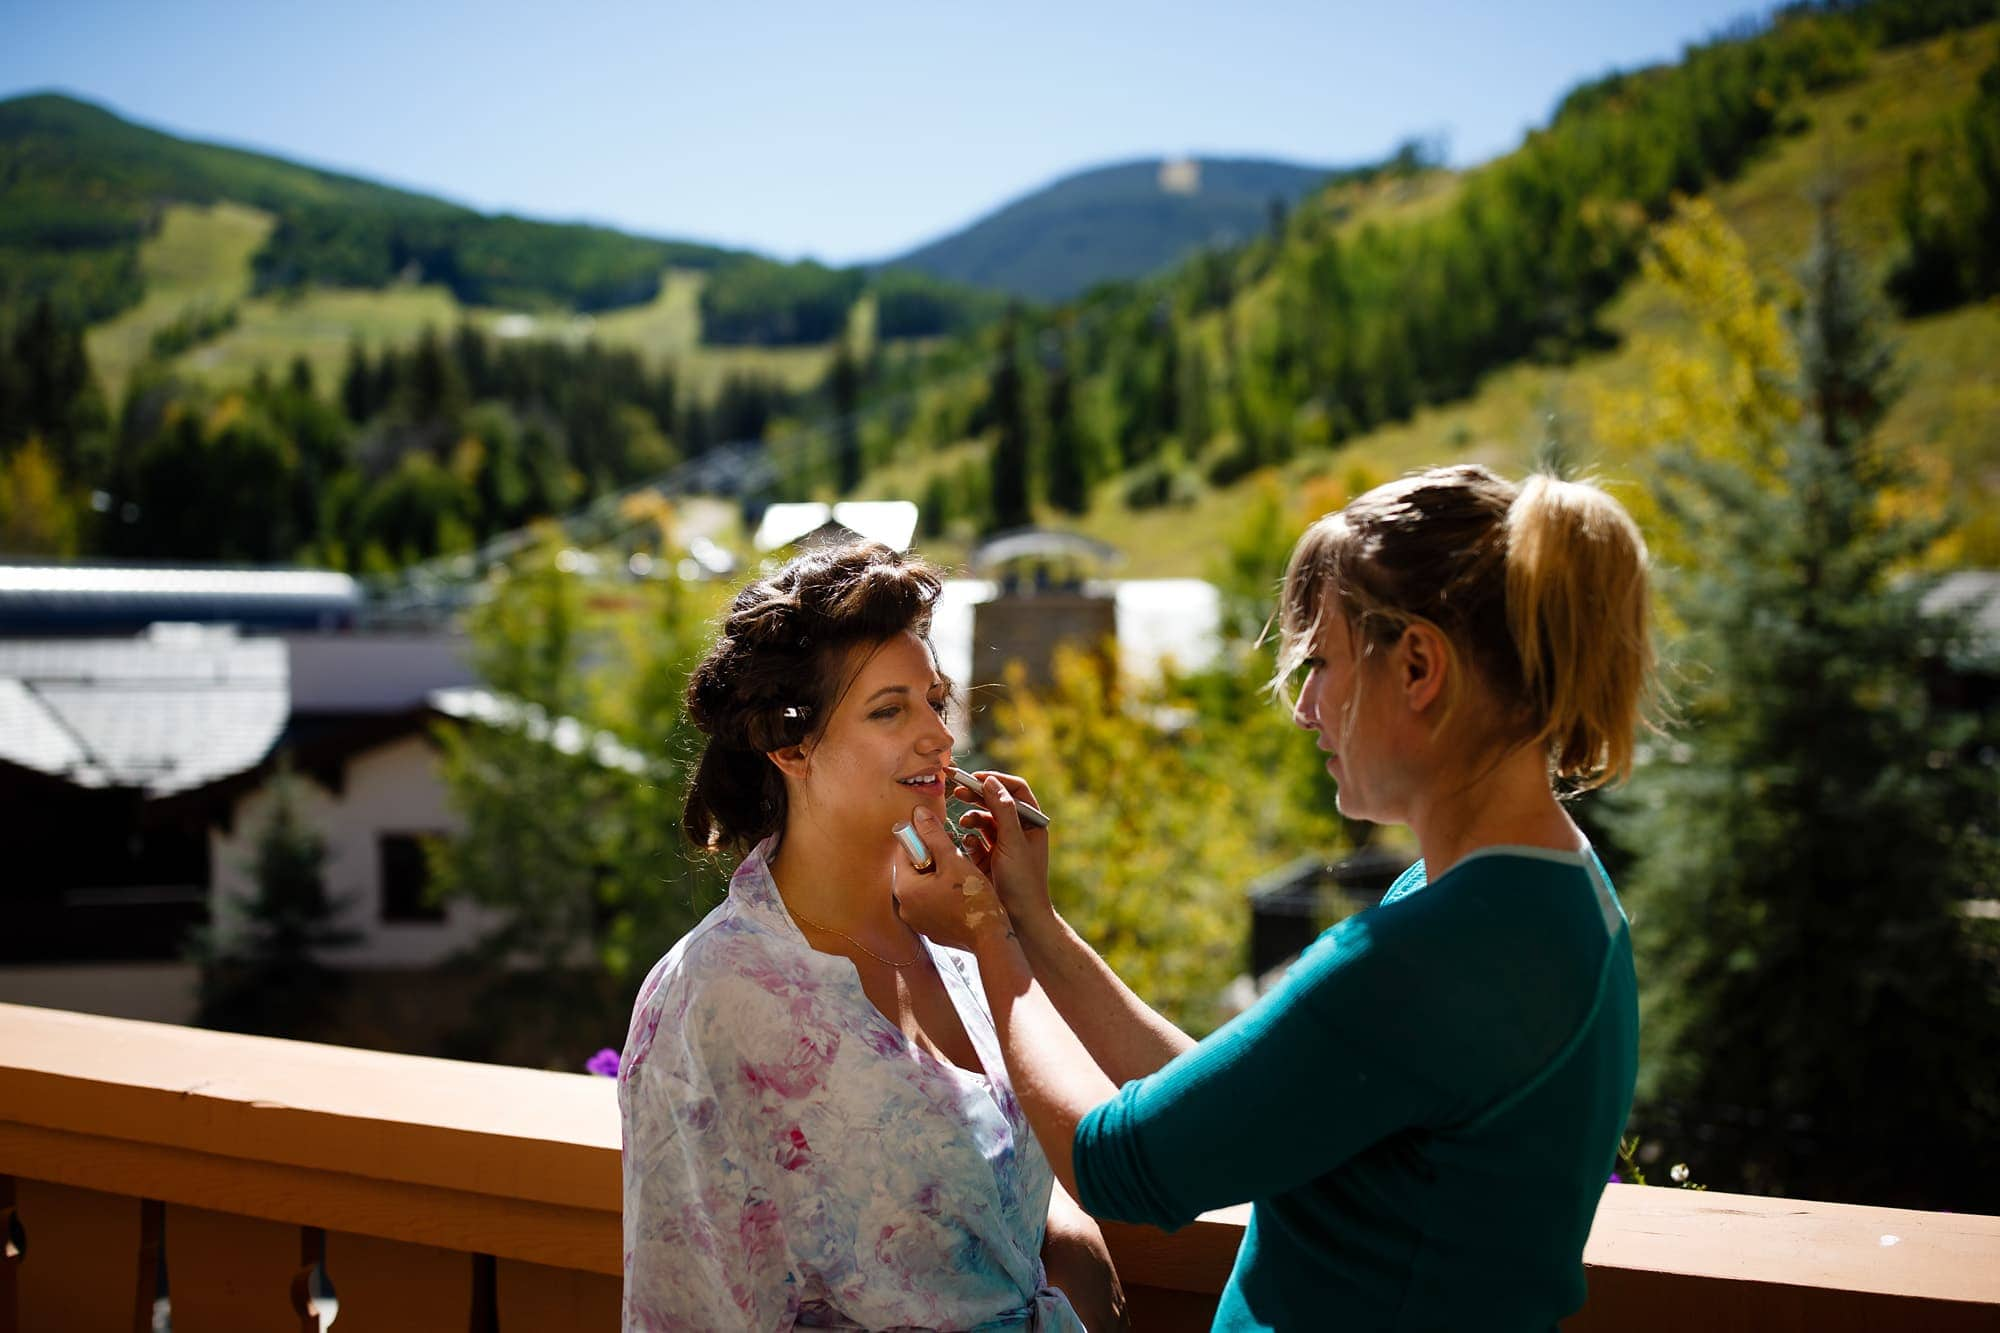 Vail village serves as a backdrop as Becky has her makeup done at The Lodge at Vail.